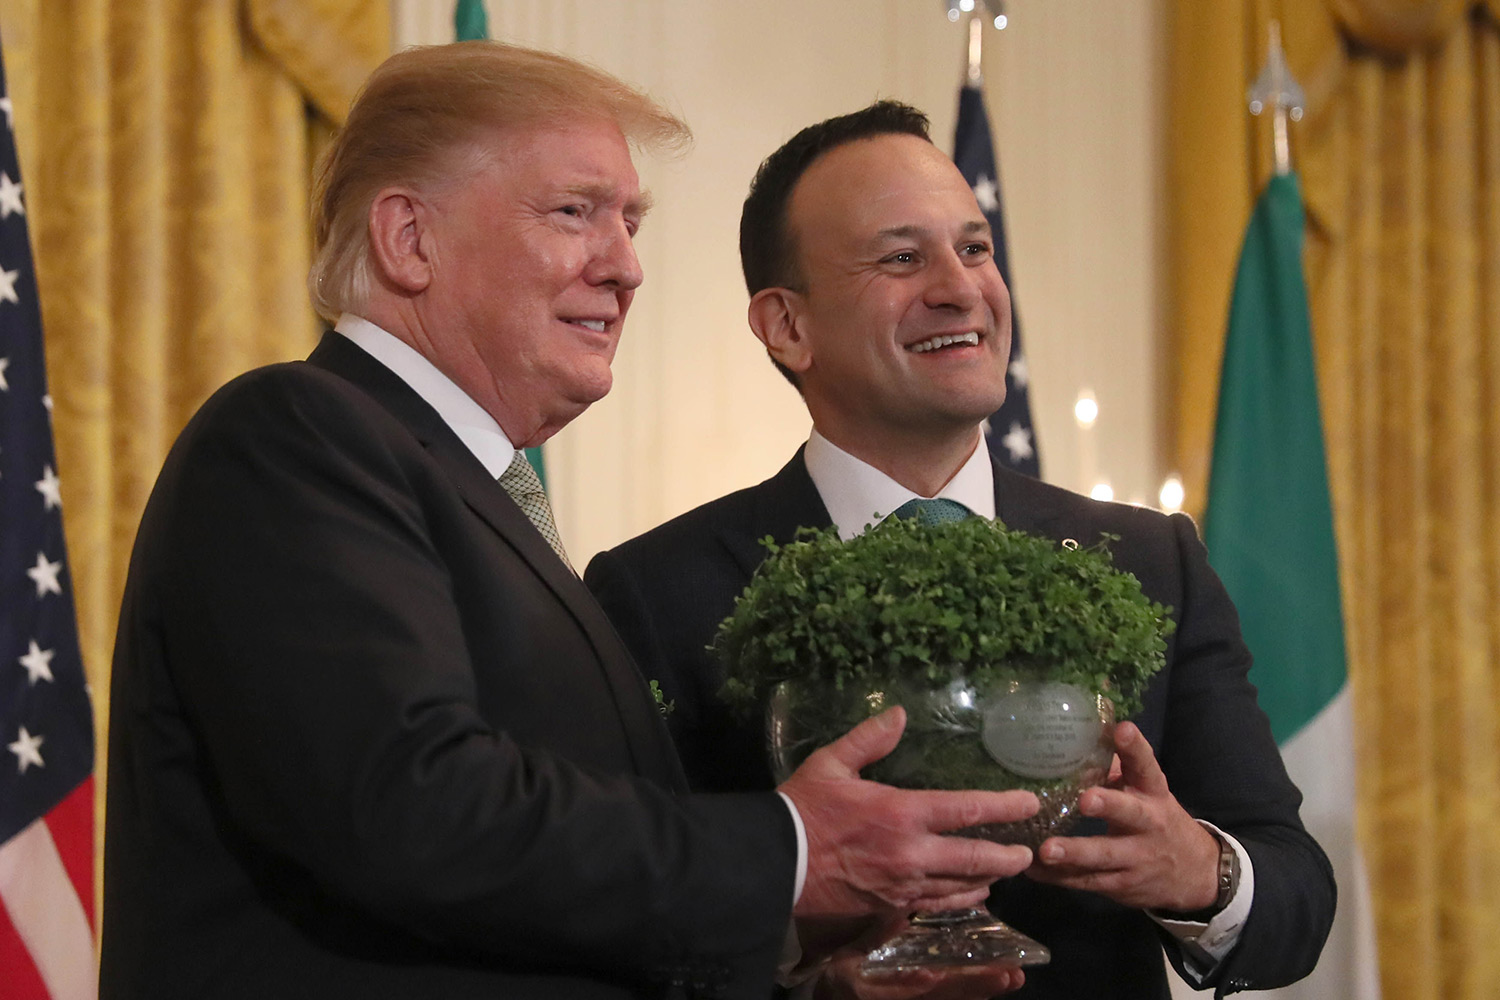 Taoiseach Leo Varadkar presents US President Donald Trump with a bowl of shamrock in Washington DC. Picture: Brian Lawless